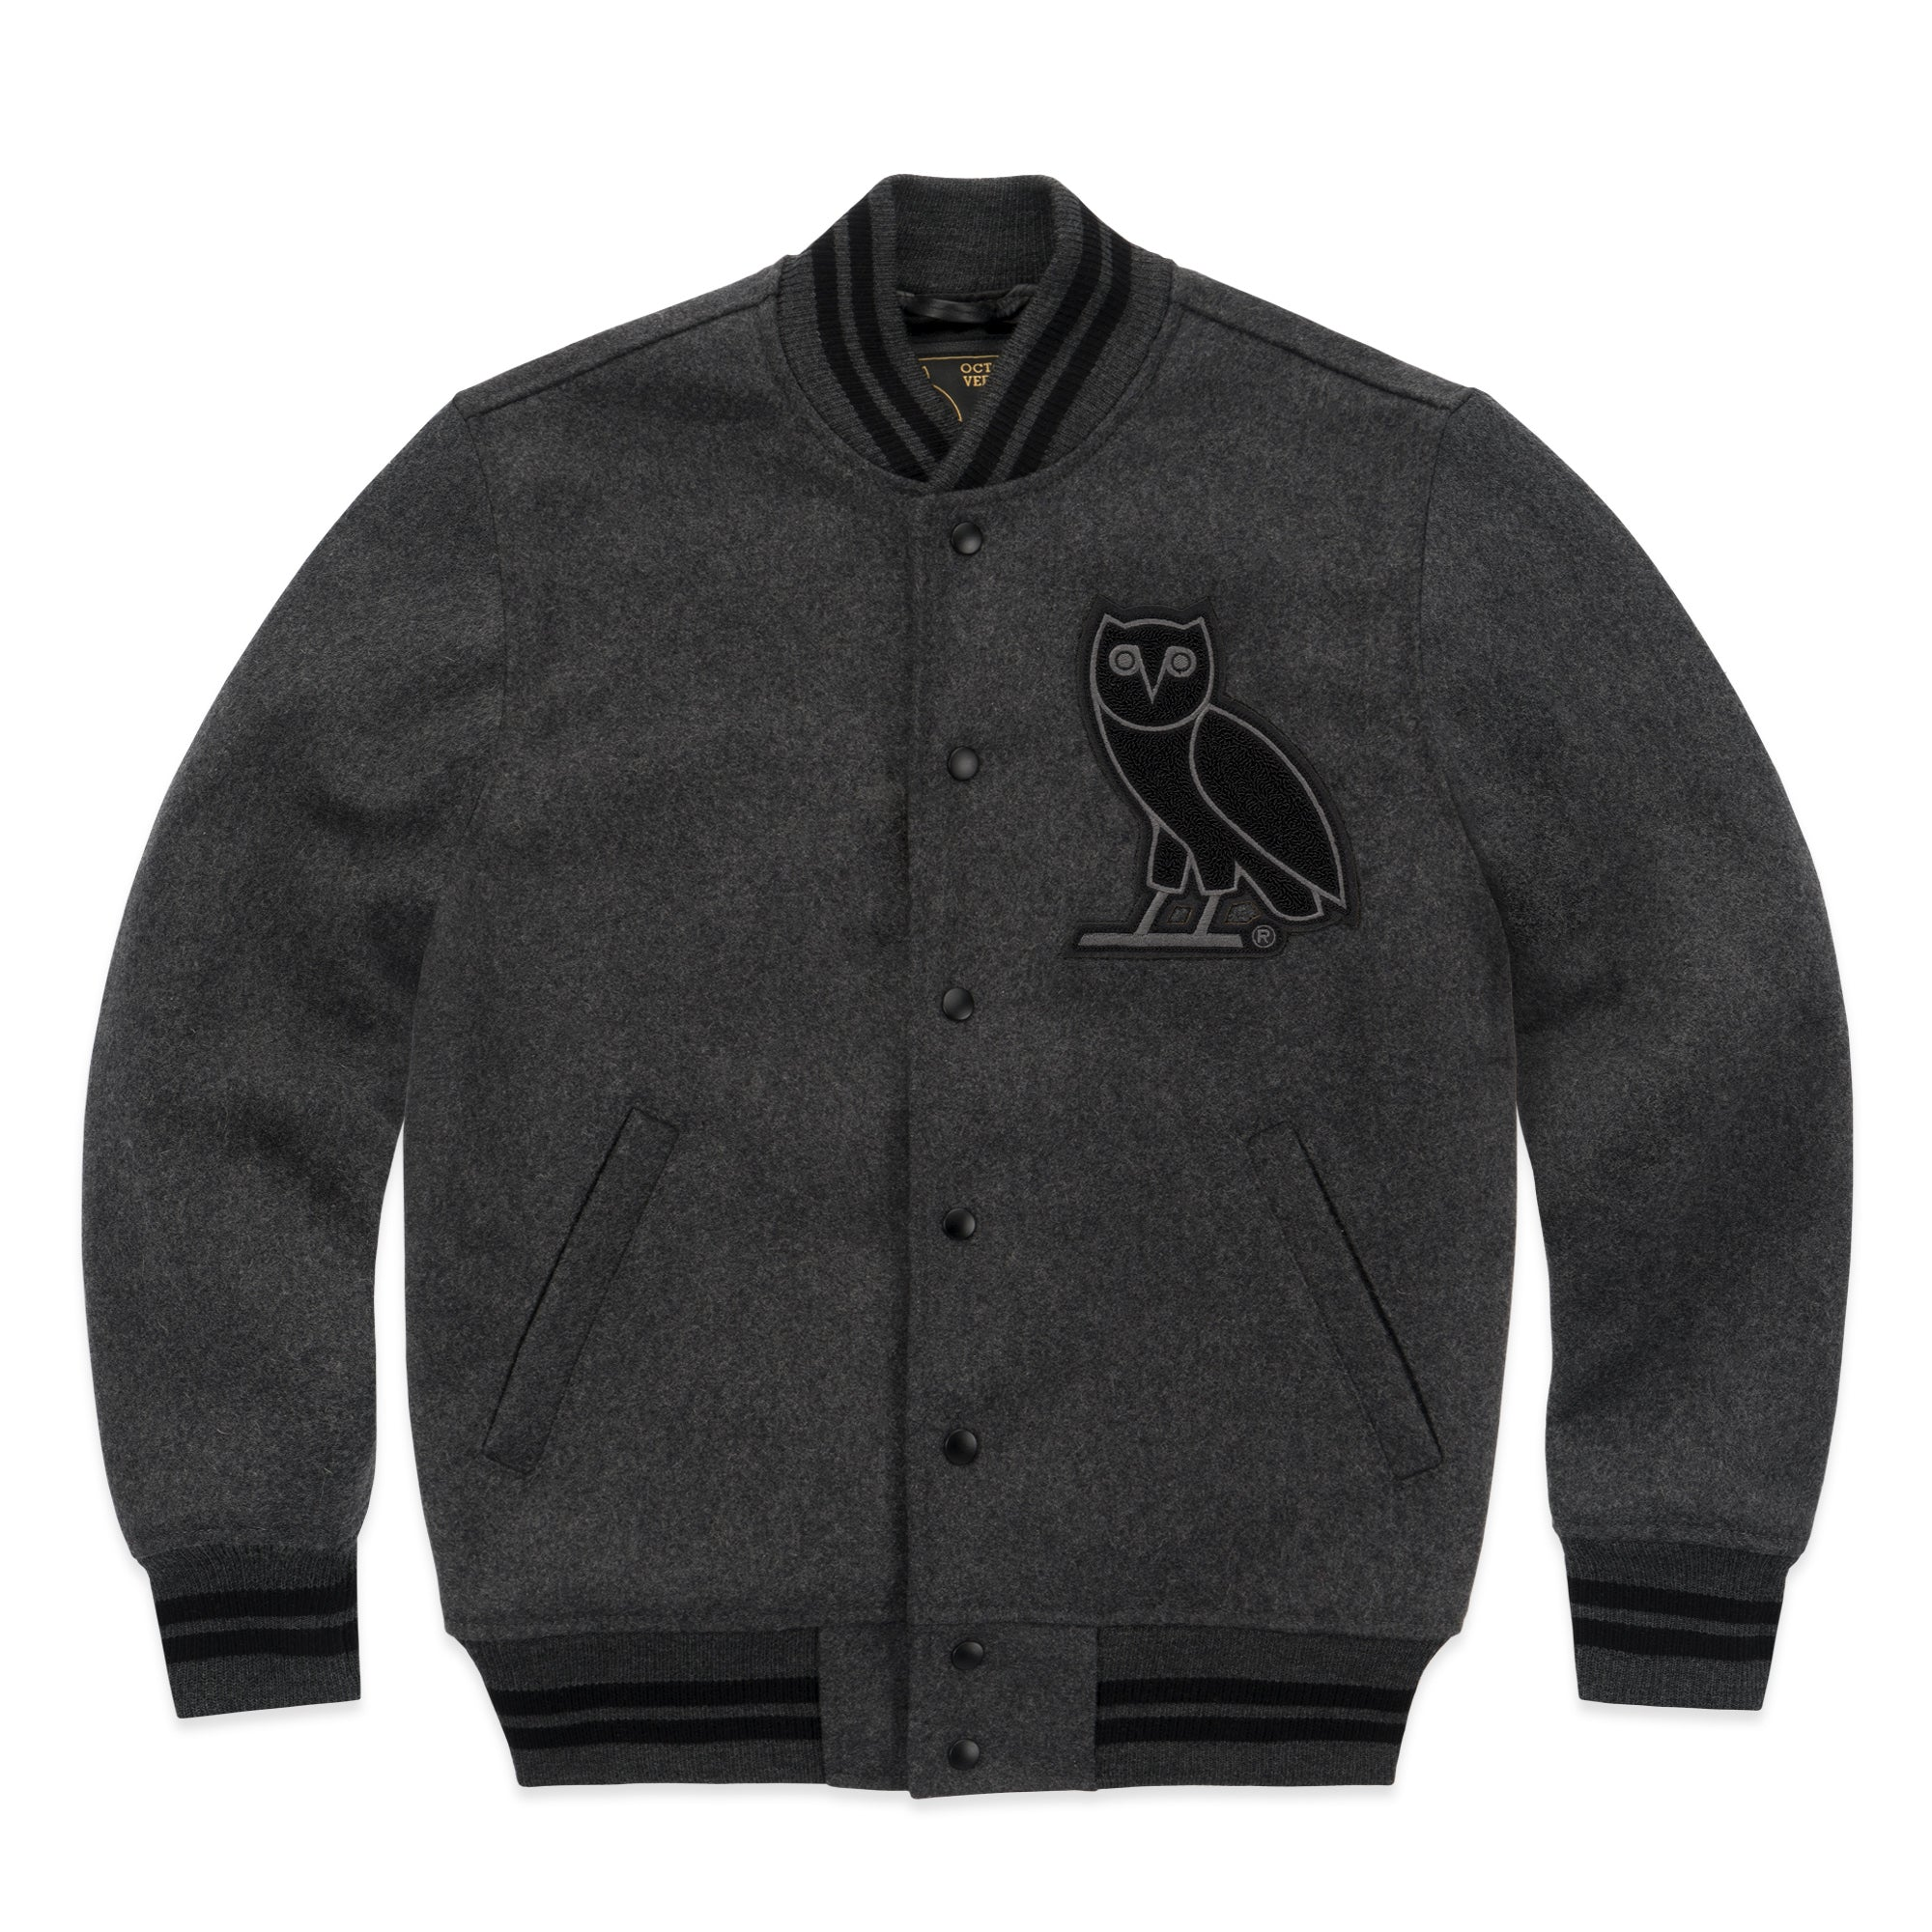 OVO TEAM JACKET - CHARCOAL